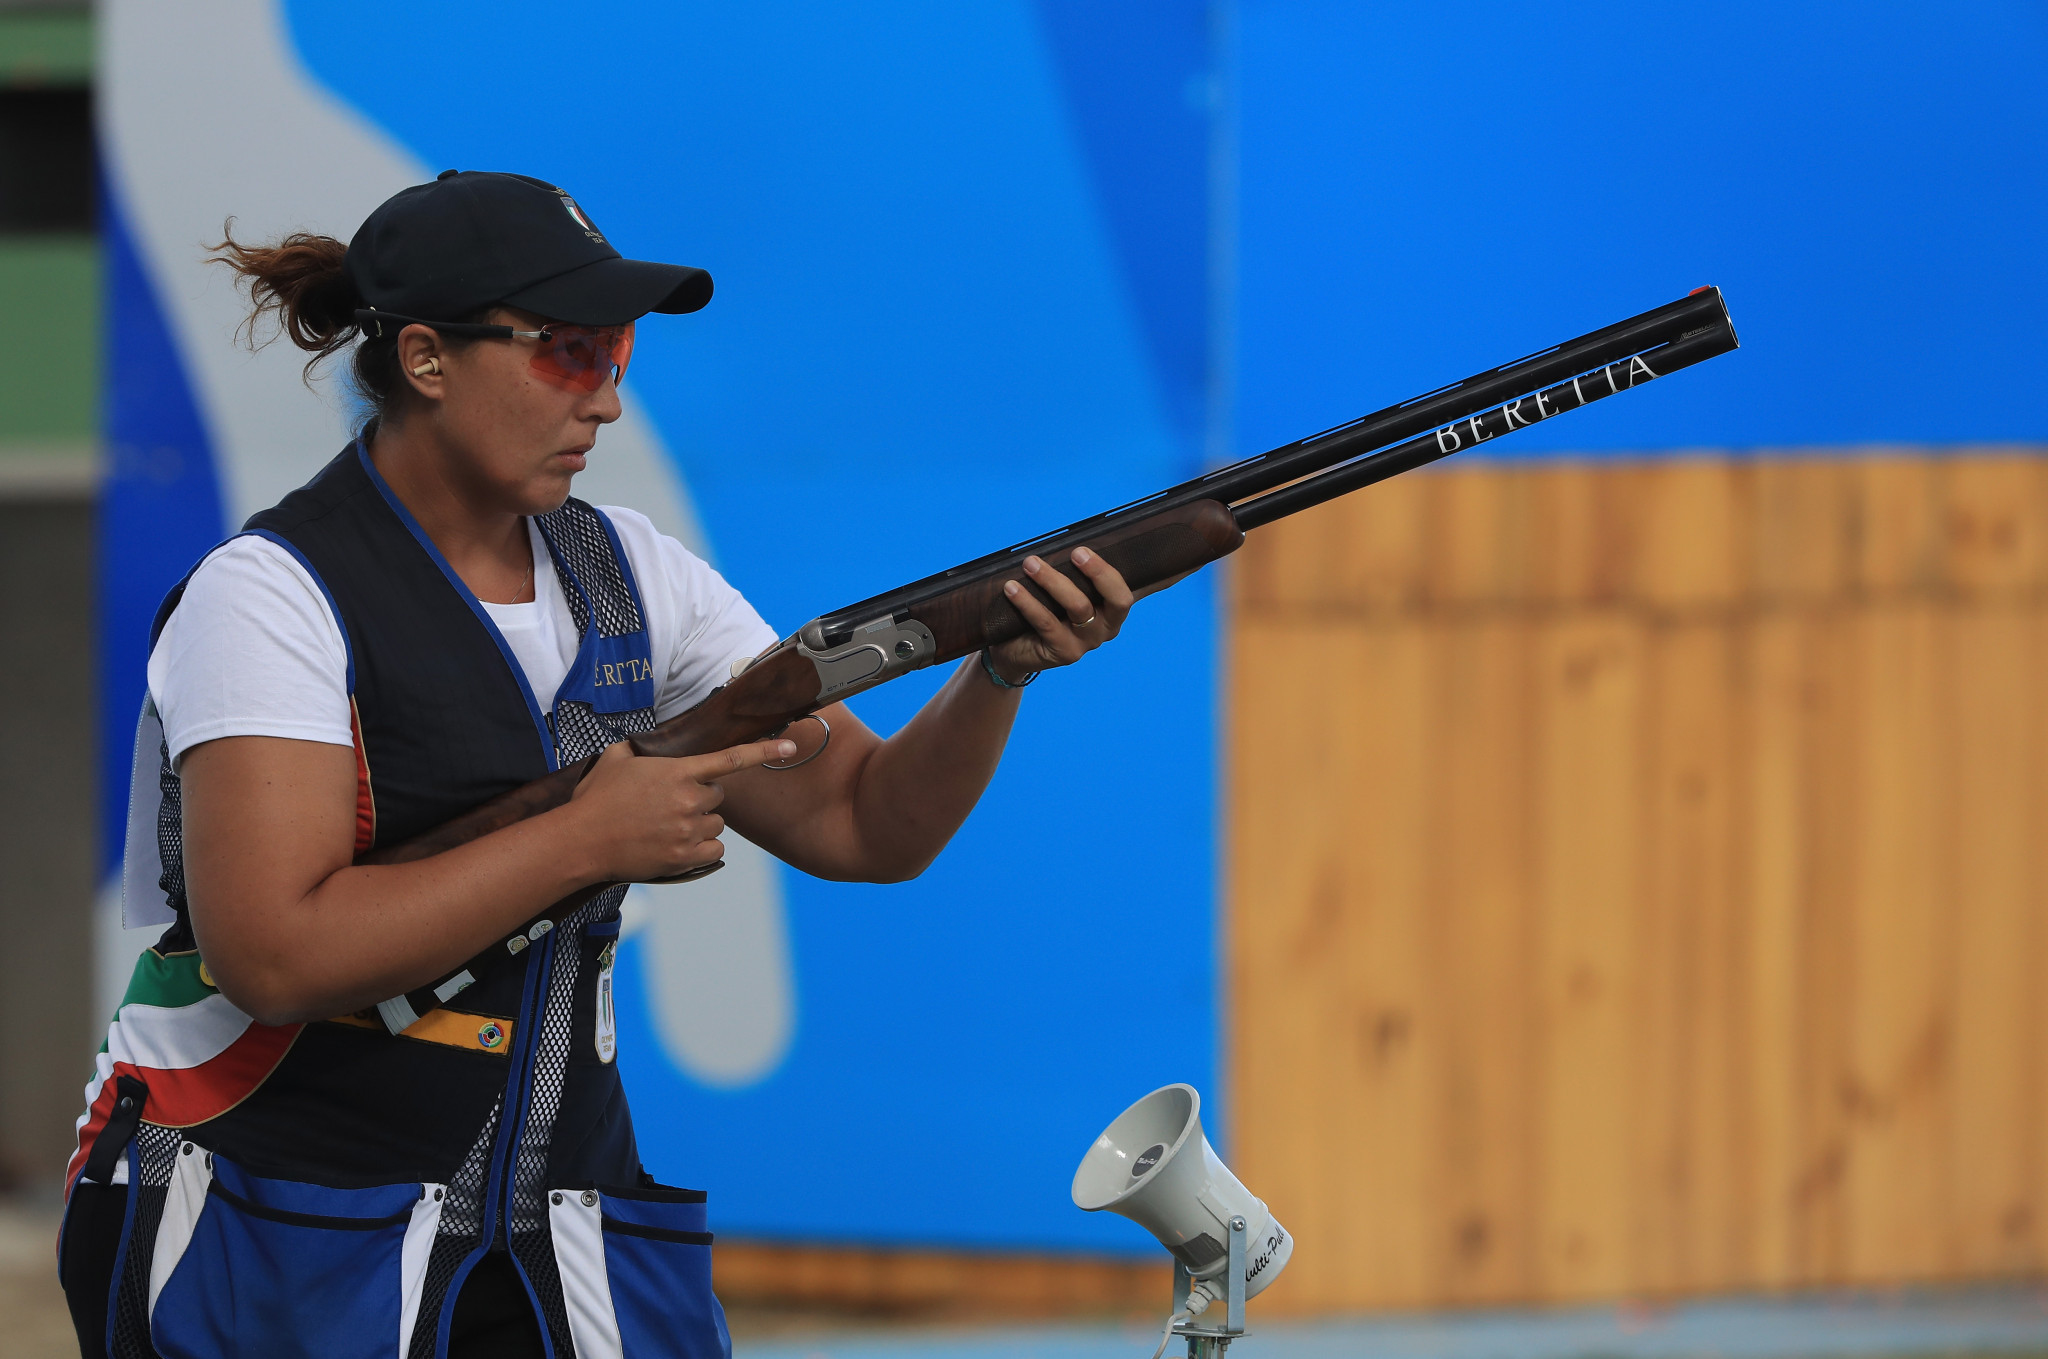 Olympic champion Bacosi claims women's skeet gold at ISSF World Shotgun Championship to leave Italy top of medals table